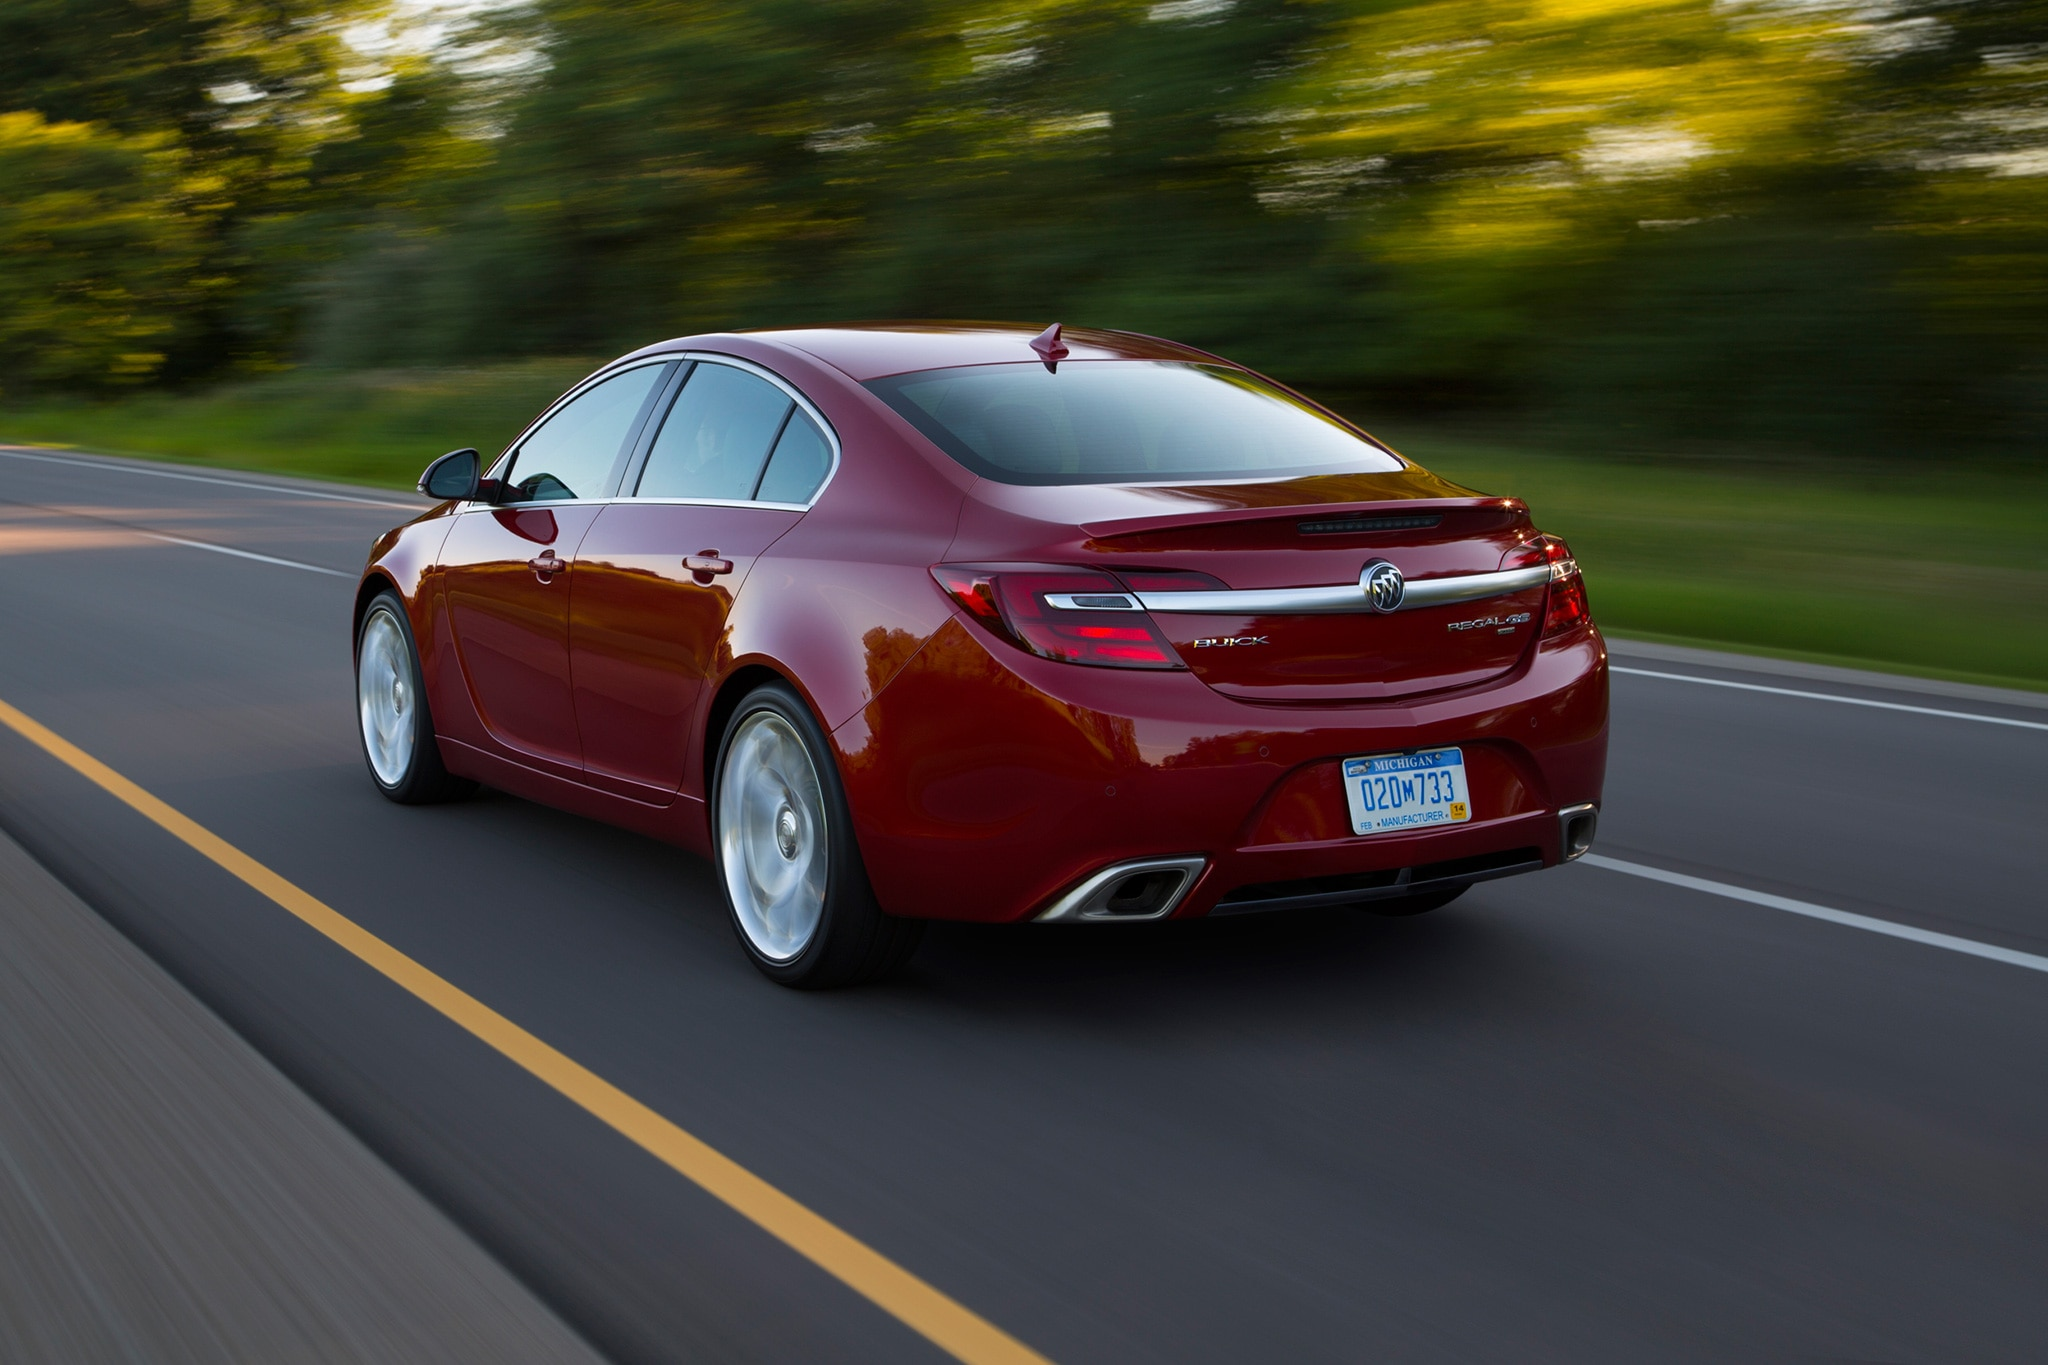 2017 Buick Regal GS Rear Three Quarter In Motion